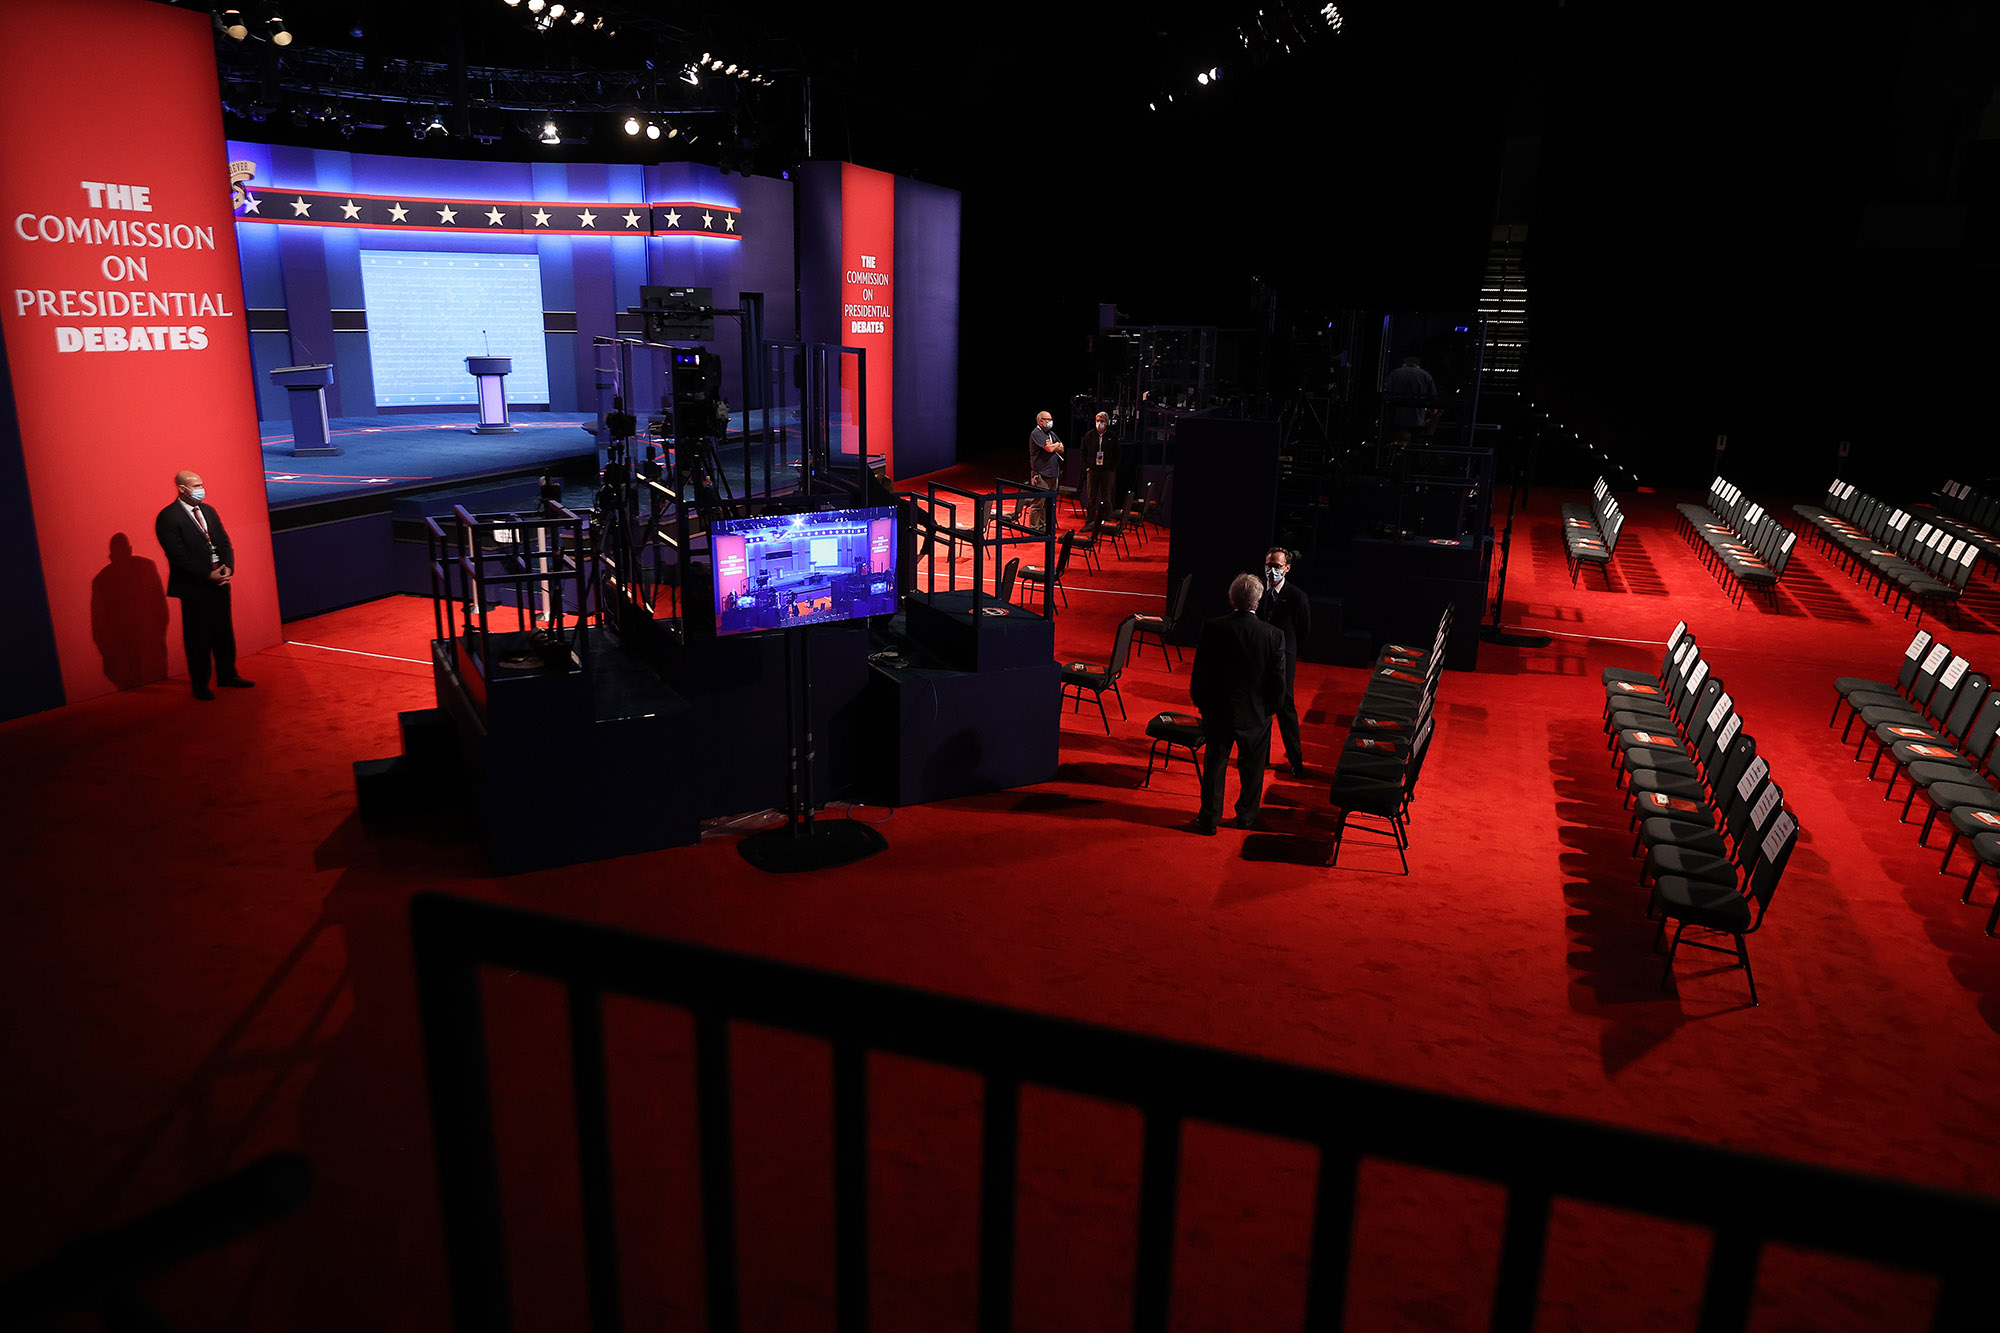 The arena is set for the second presidential debate in the Curb Event Center on the campus of Belmont University October 22, in Nashville.